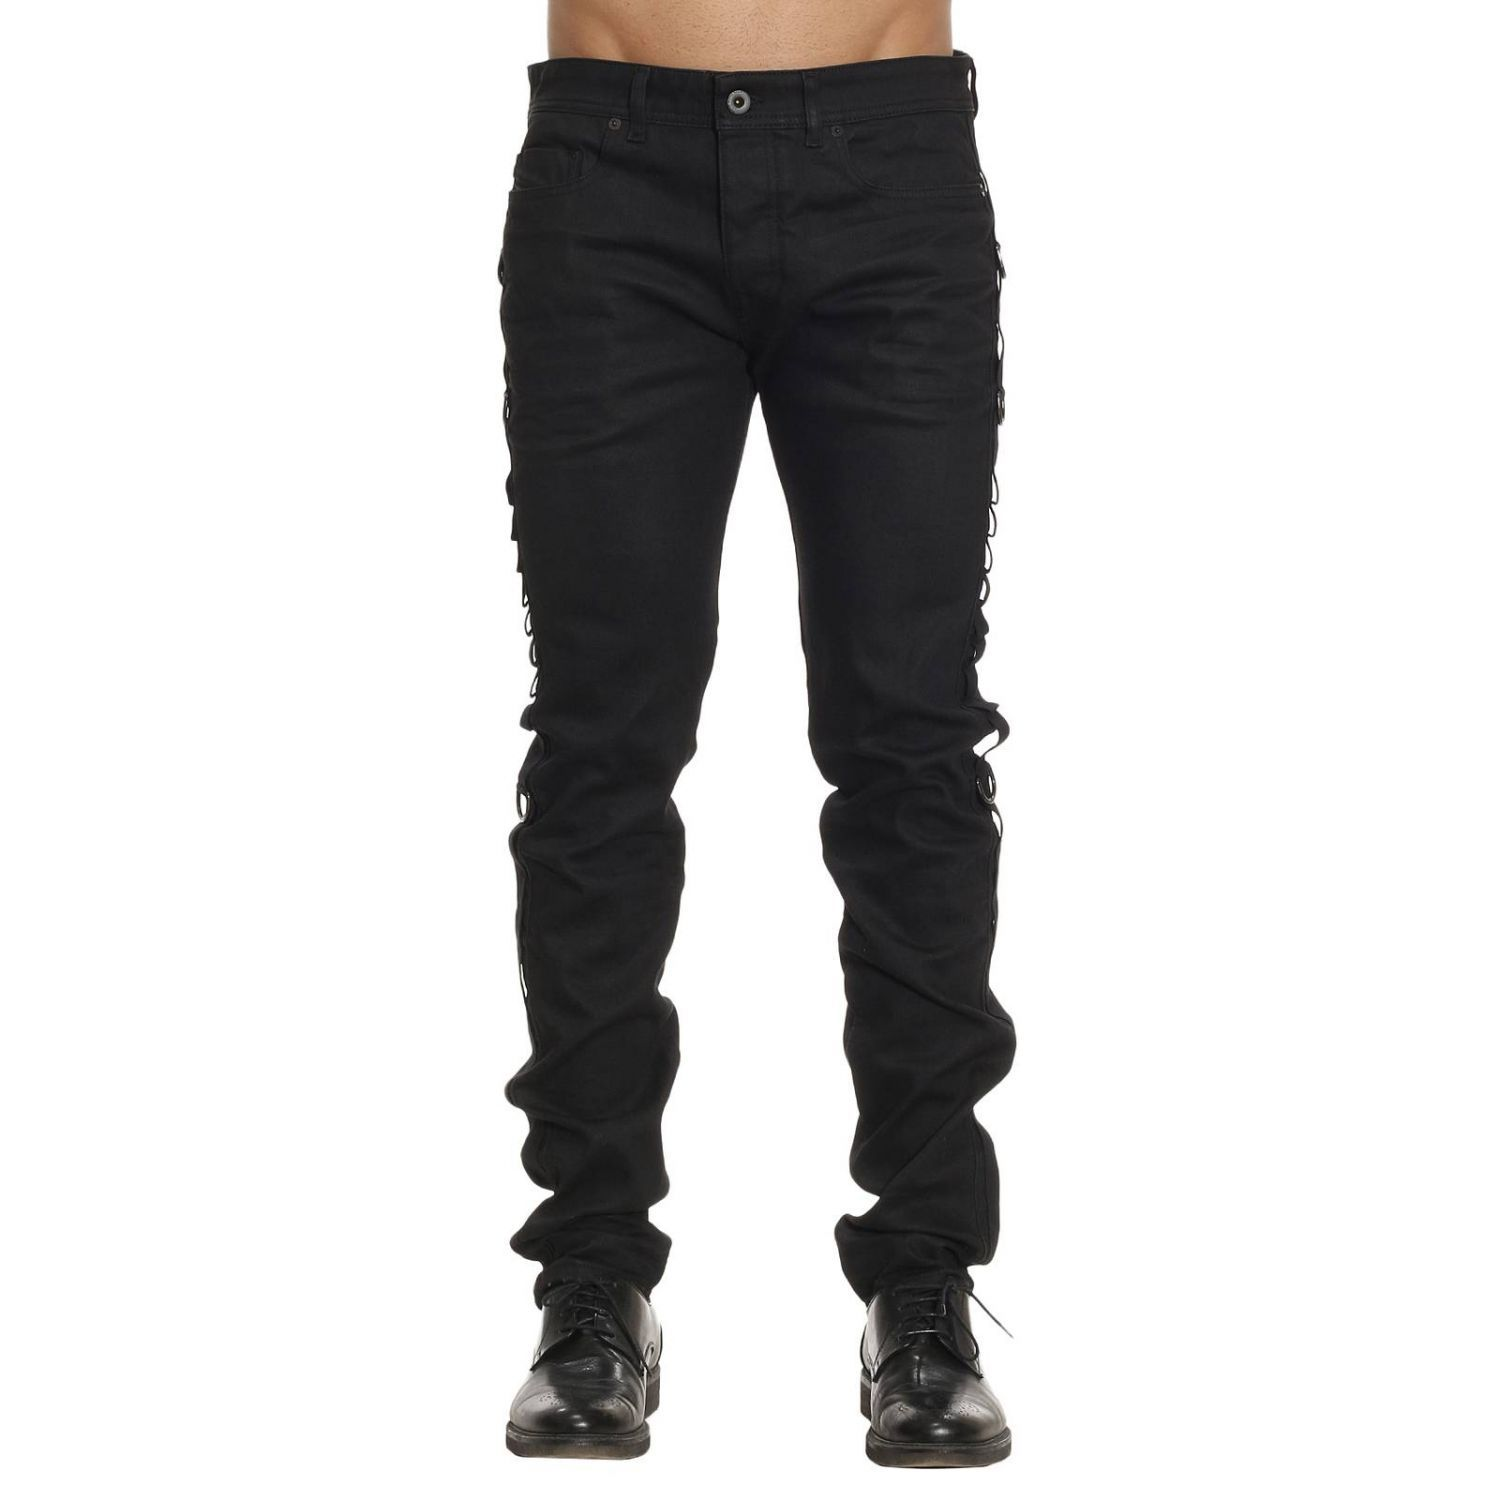 Jeans Jeans Men Diesel Black Gold